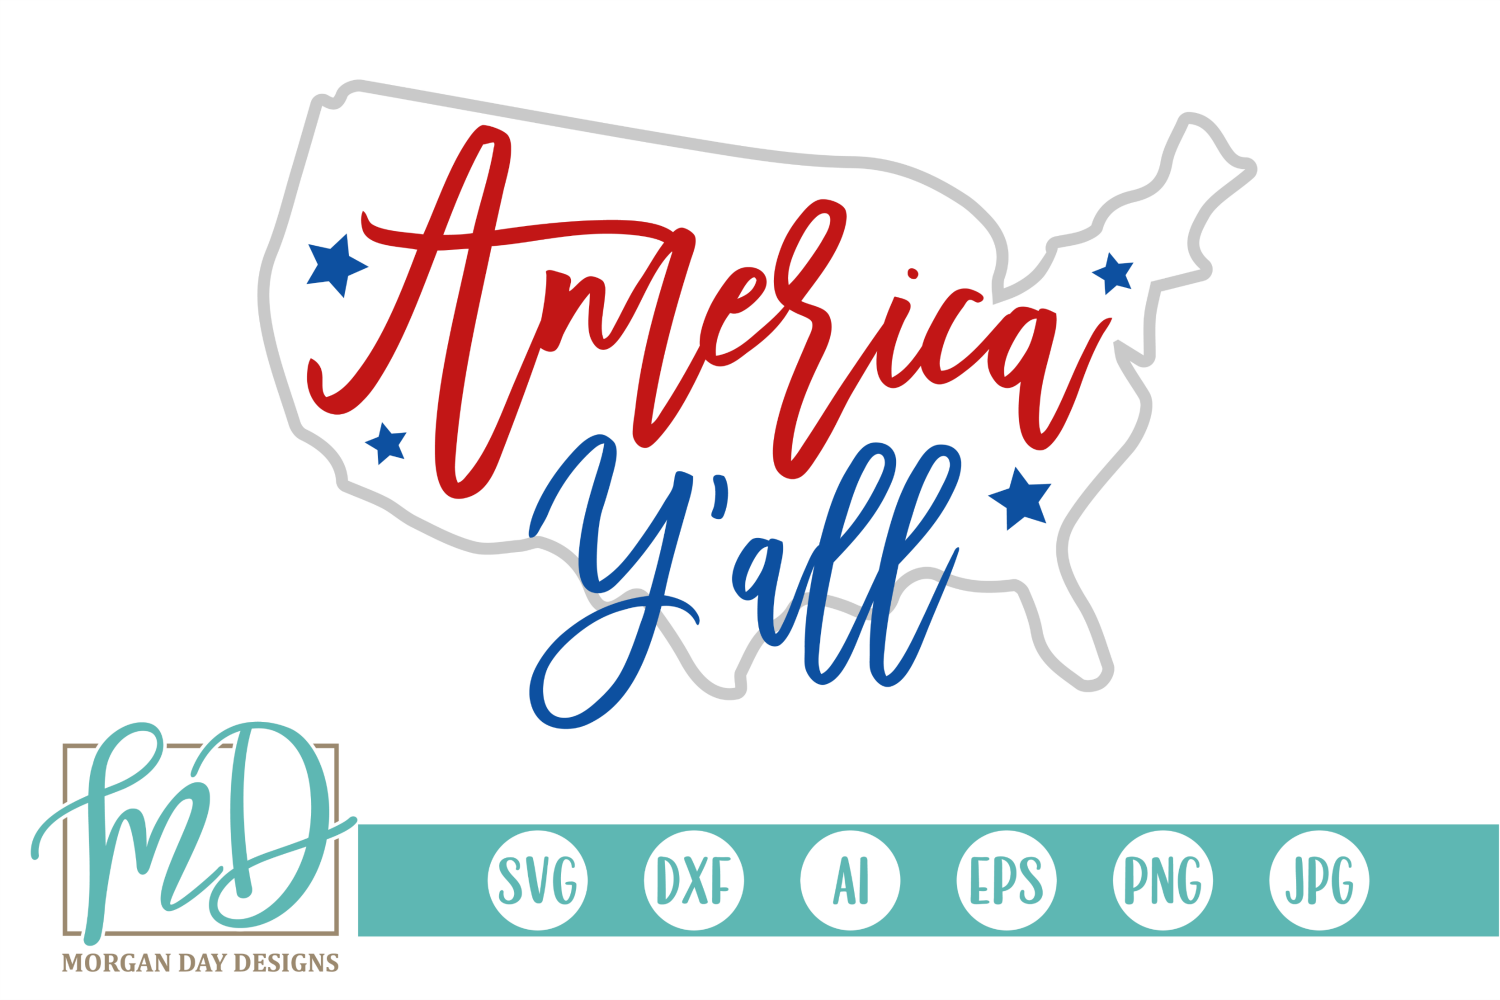 Download Free America Y All Svg Graphic By Morgan Day Designs Creative Fabrica for Cricut Explore, Silhouette and other cutting machines.